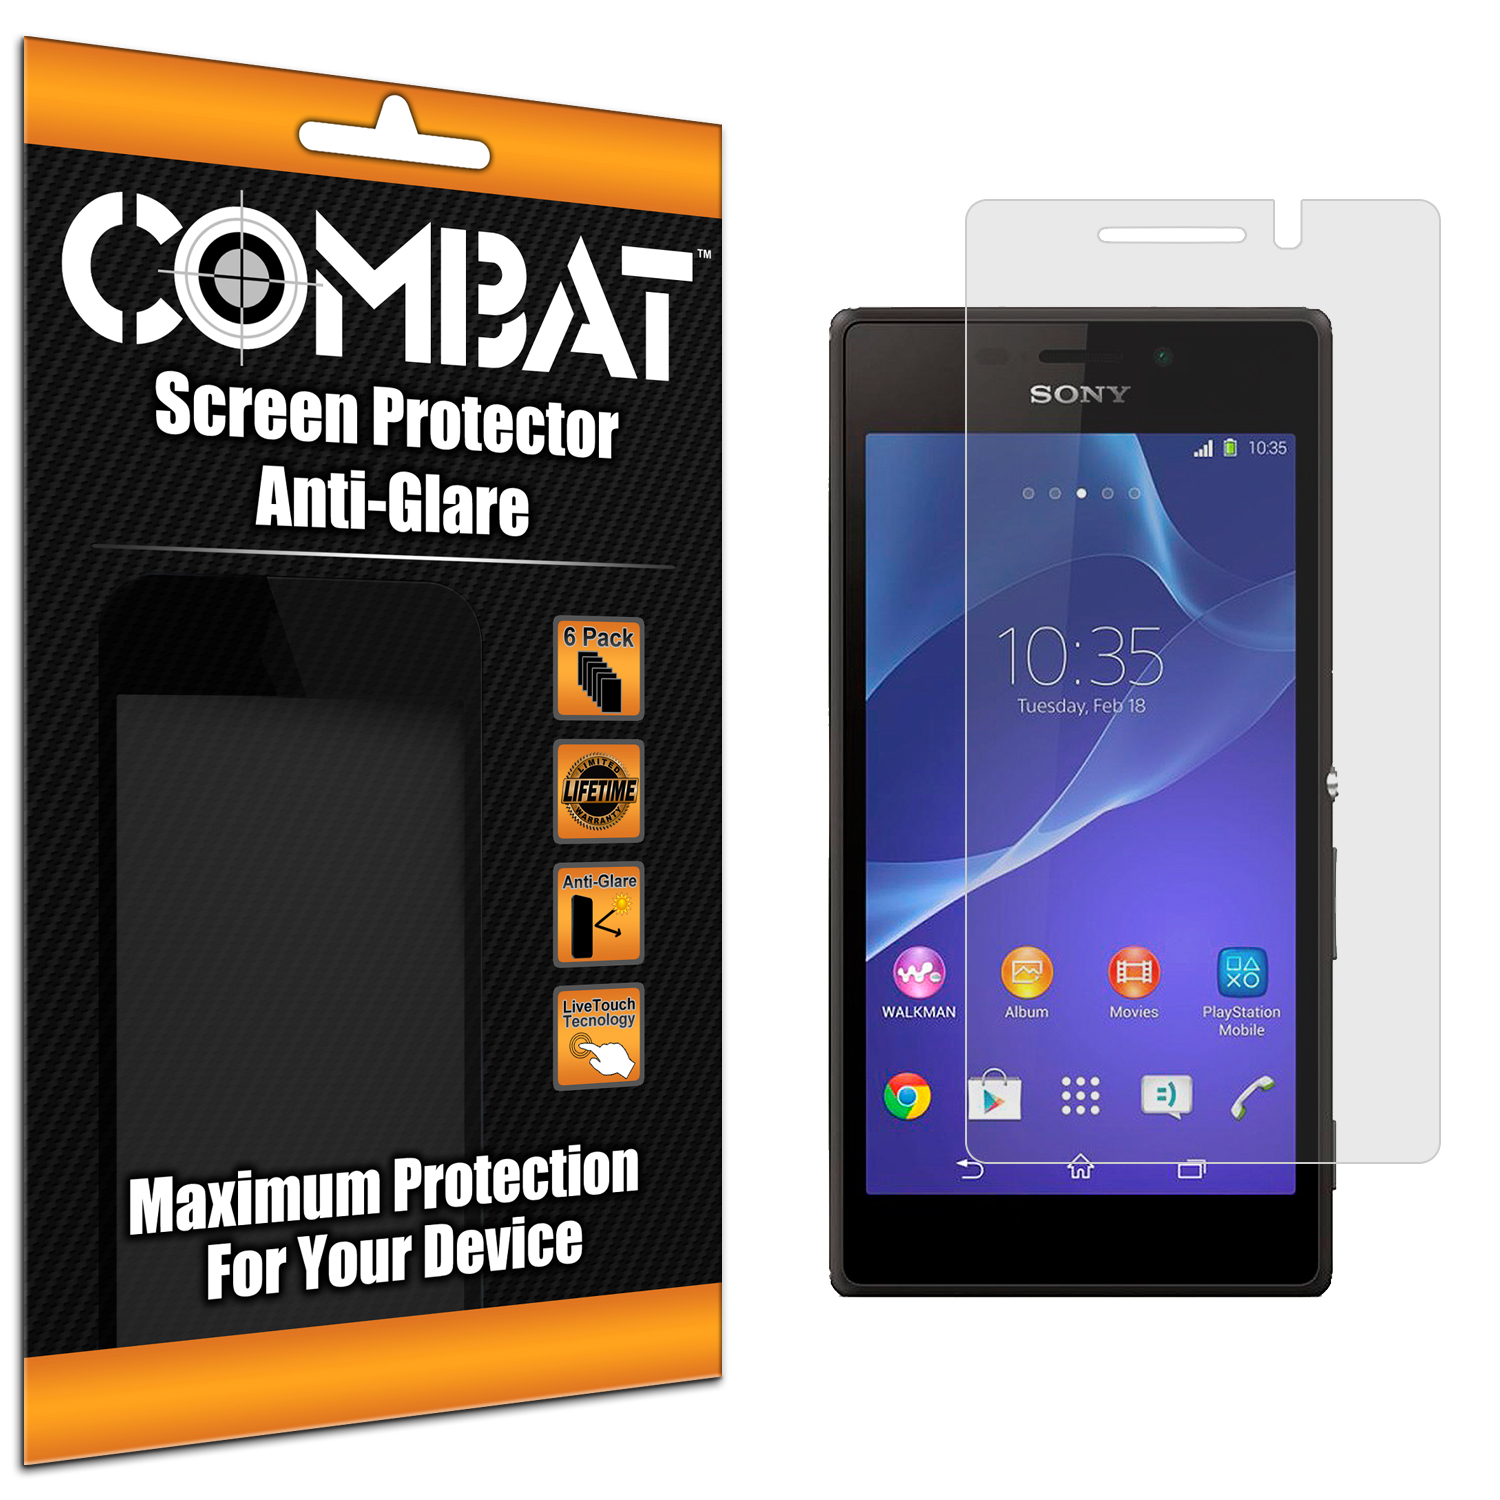 Sony Xperia M2 Combat 6 Pack Anti-Glare Matte Screen Protector